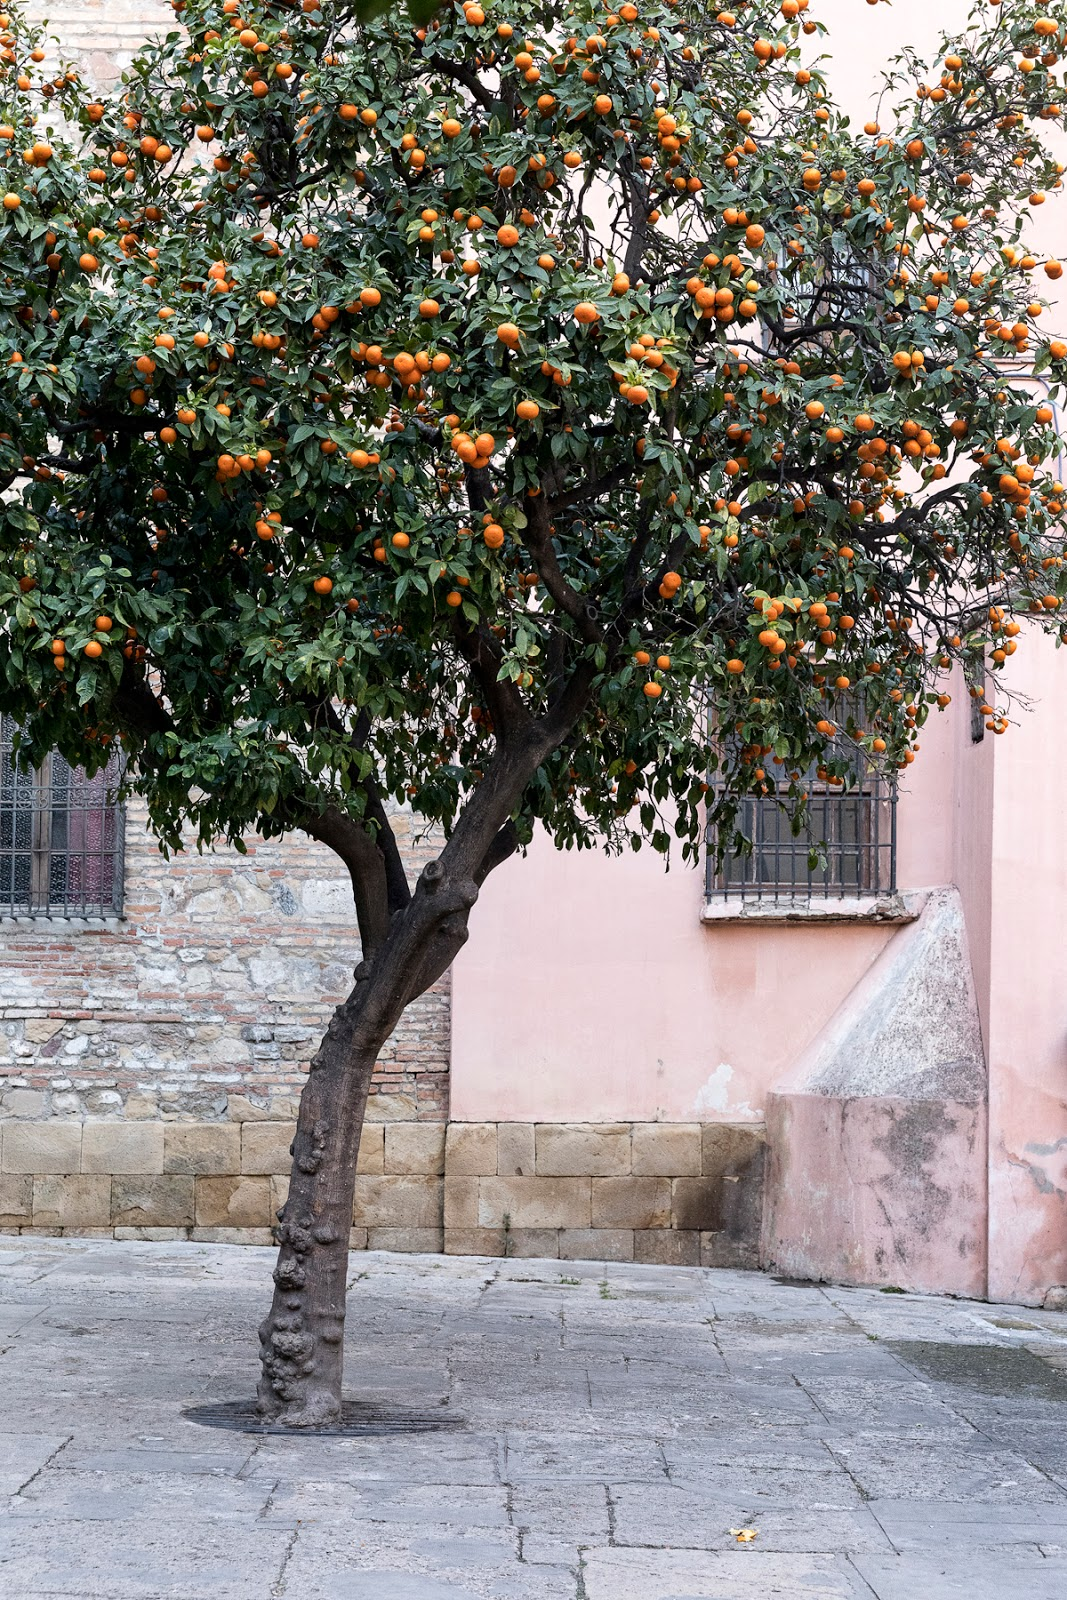 Malaga, Spain, visitspain, Andalucia, Espanja, Costa del Sol, aurinkorannikko, kaupunkikuvaus, streetphotography, valokuvaus, photography, photographer, valokuvaaja, Frida Steiner, Visualaddict, Visualaddictfrida, arkkitehtuuri, architecture, facades, old buildings, mandarin tree, fruit, mandarins